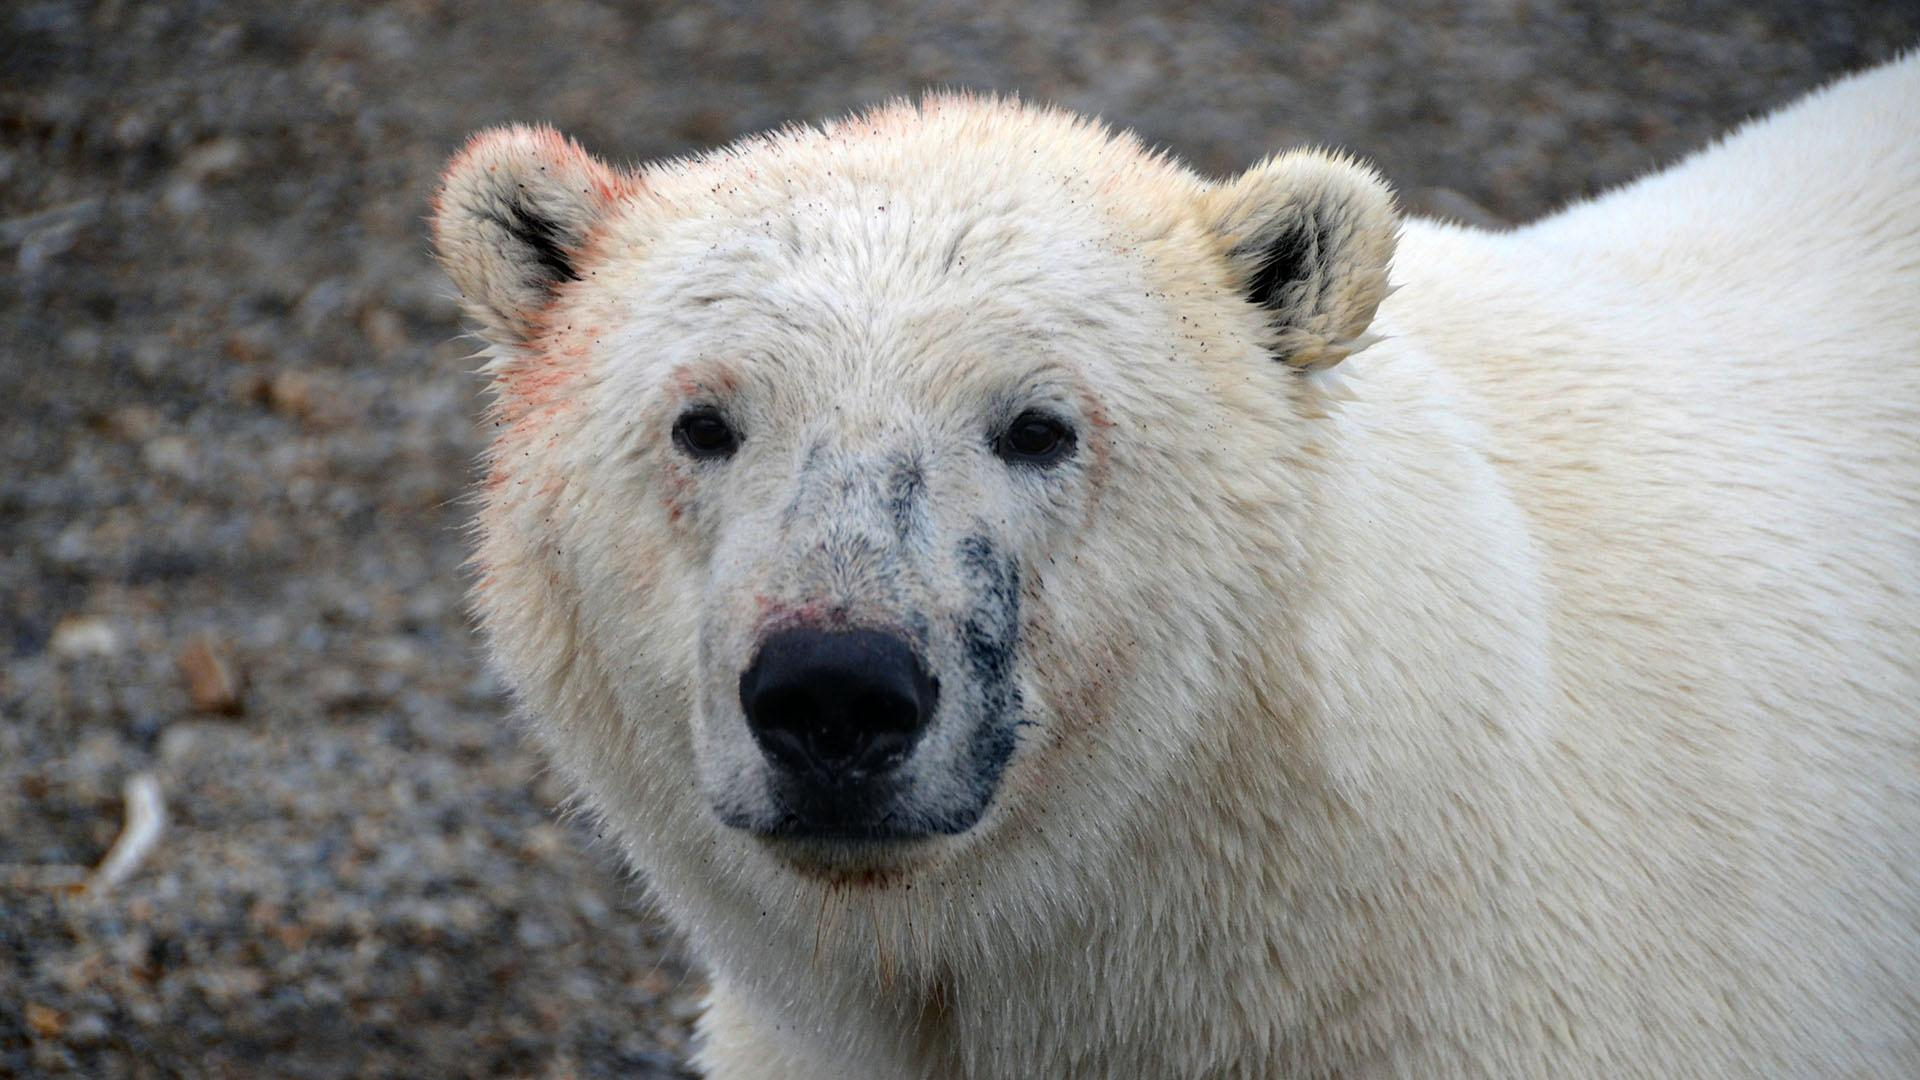 Gathering is a Challenge for Solitary Bears